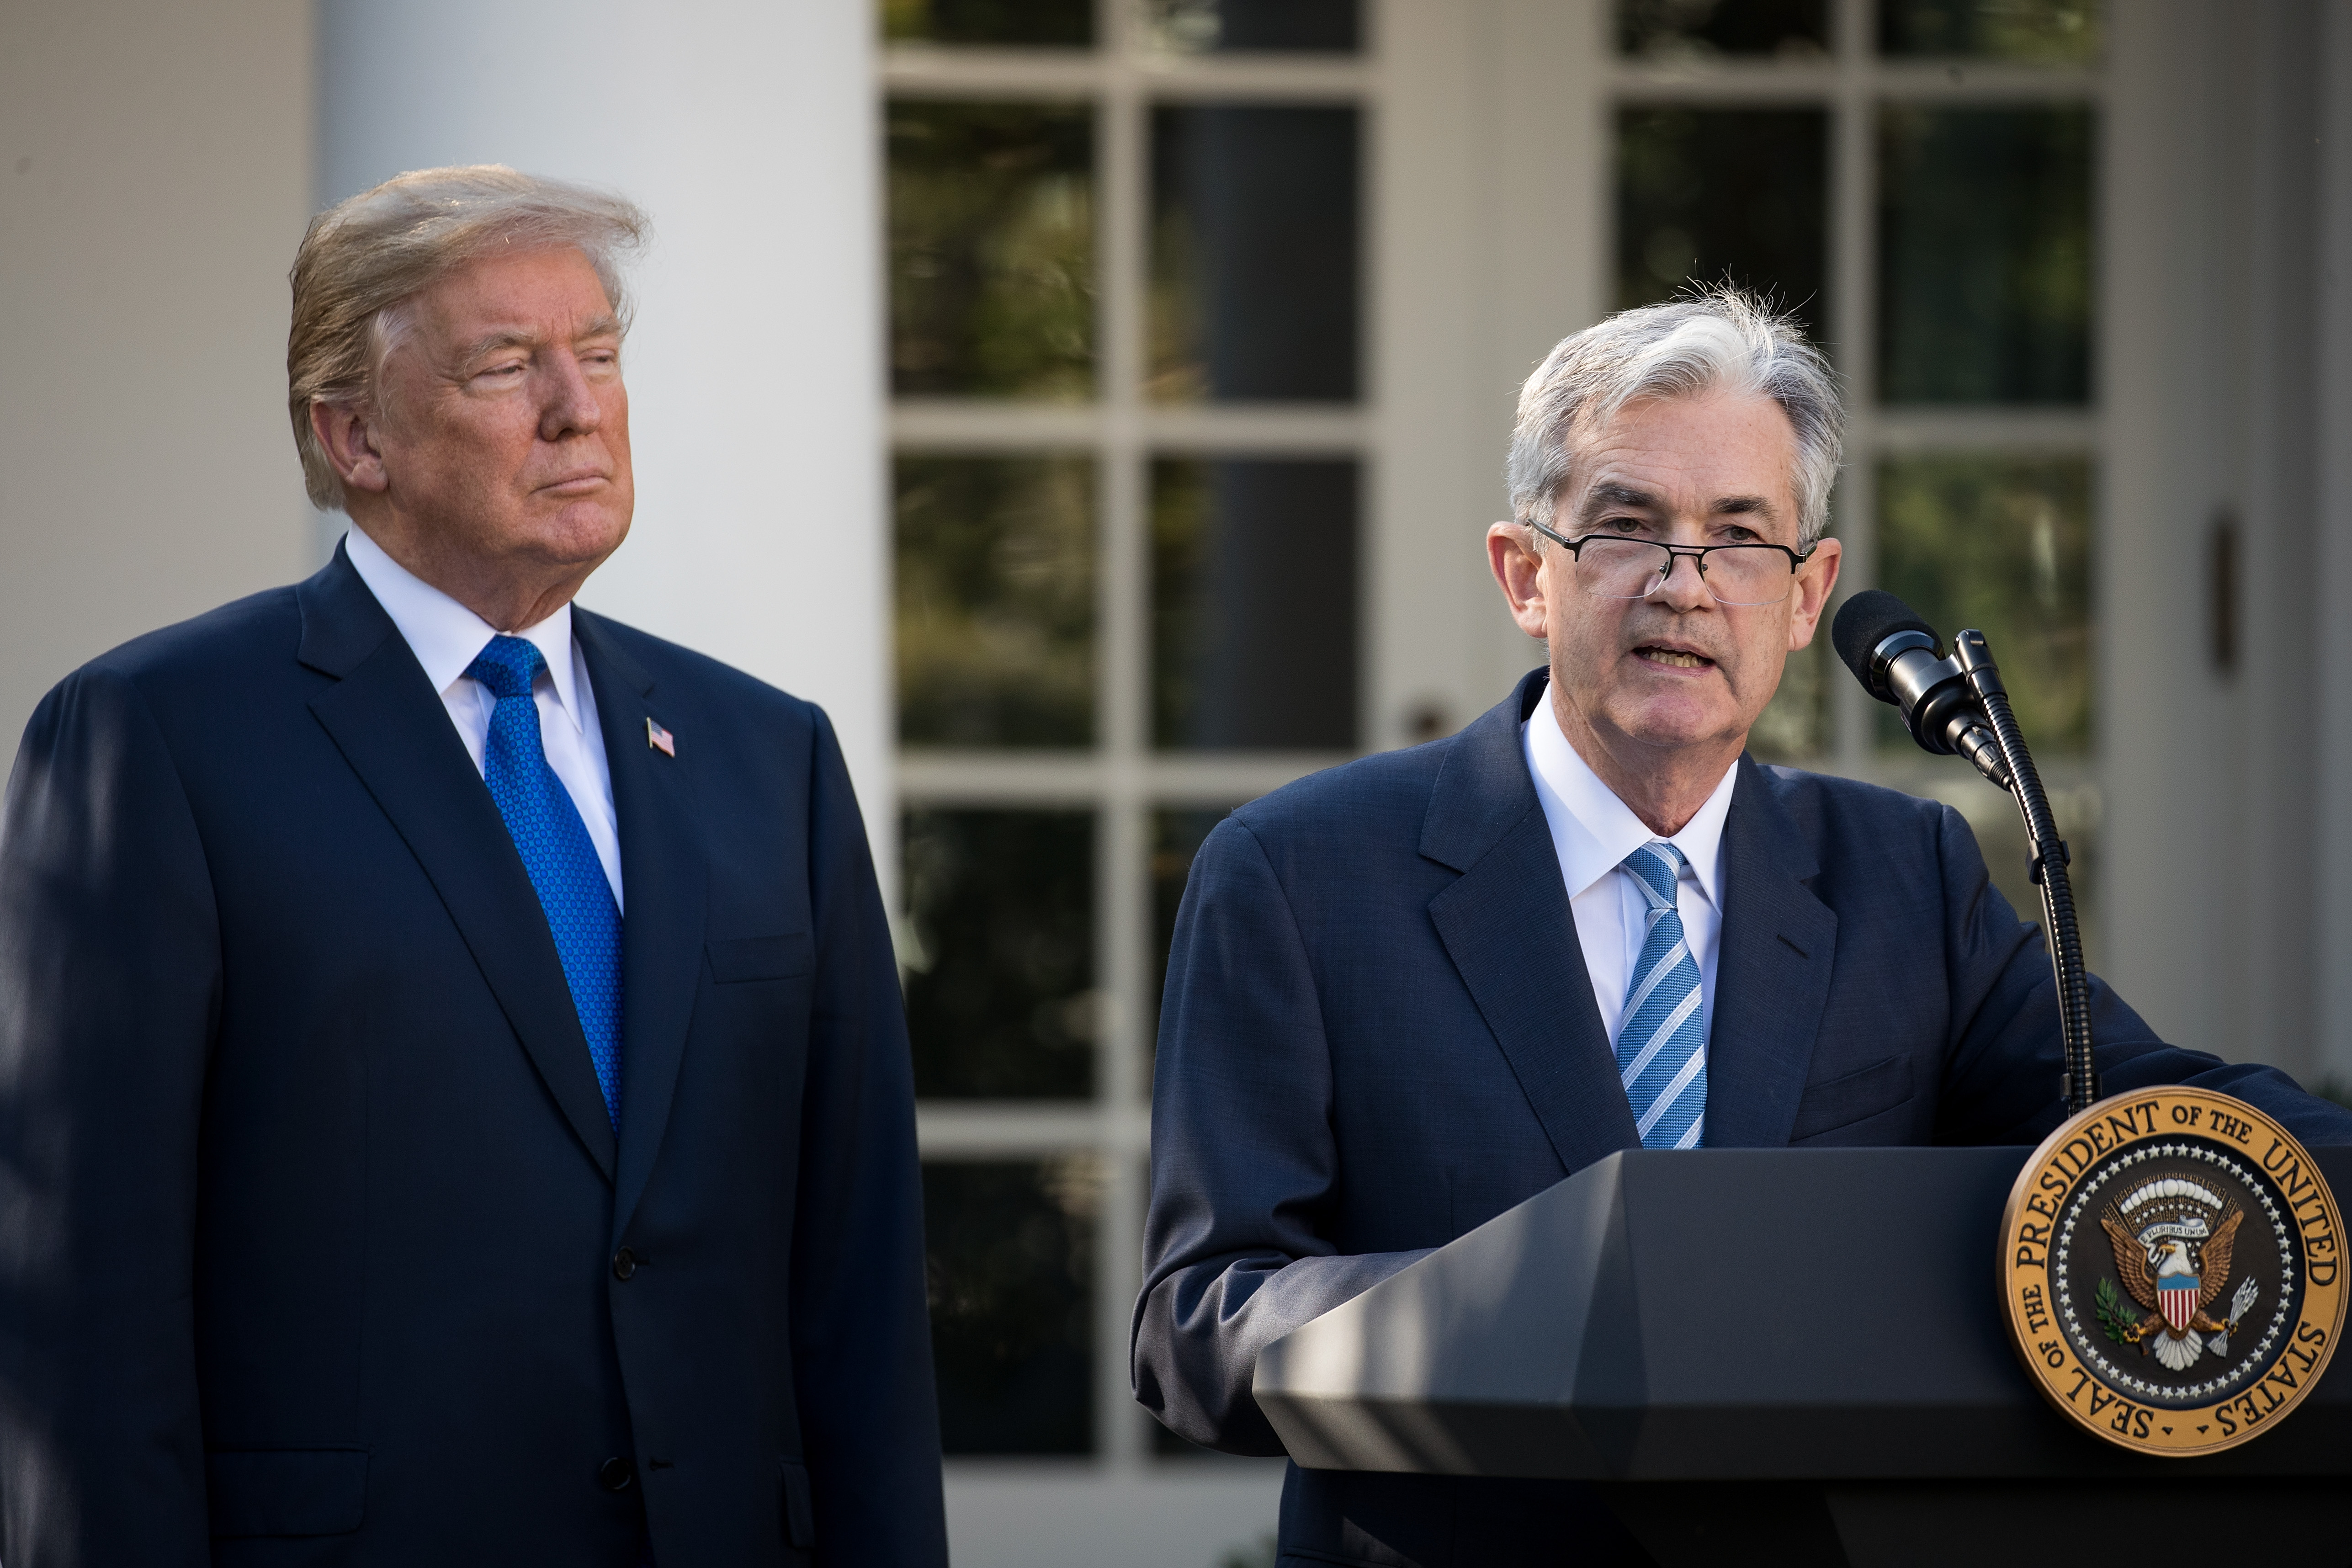 U.S. President Donald Trump looks on as his nominee for the chairman of the Federal Reserve Jerome Powell speaks during a press event in the Rose Garden at the White House, November 2, 2017 in Washington, DC. (Photo by Drew Angerer/Getty Images)